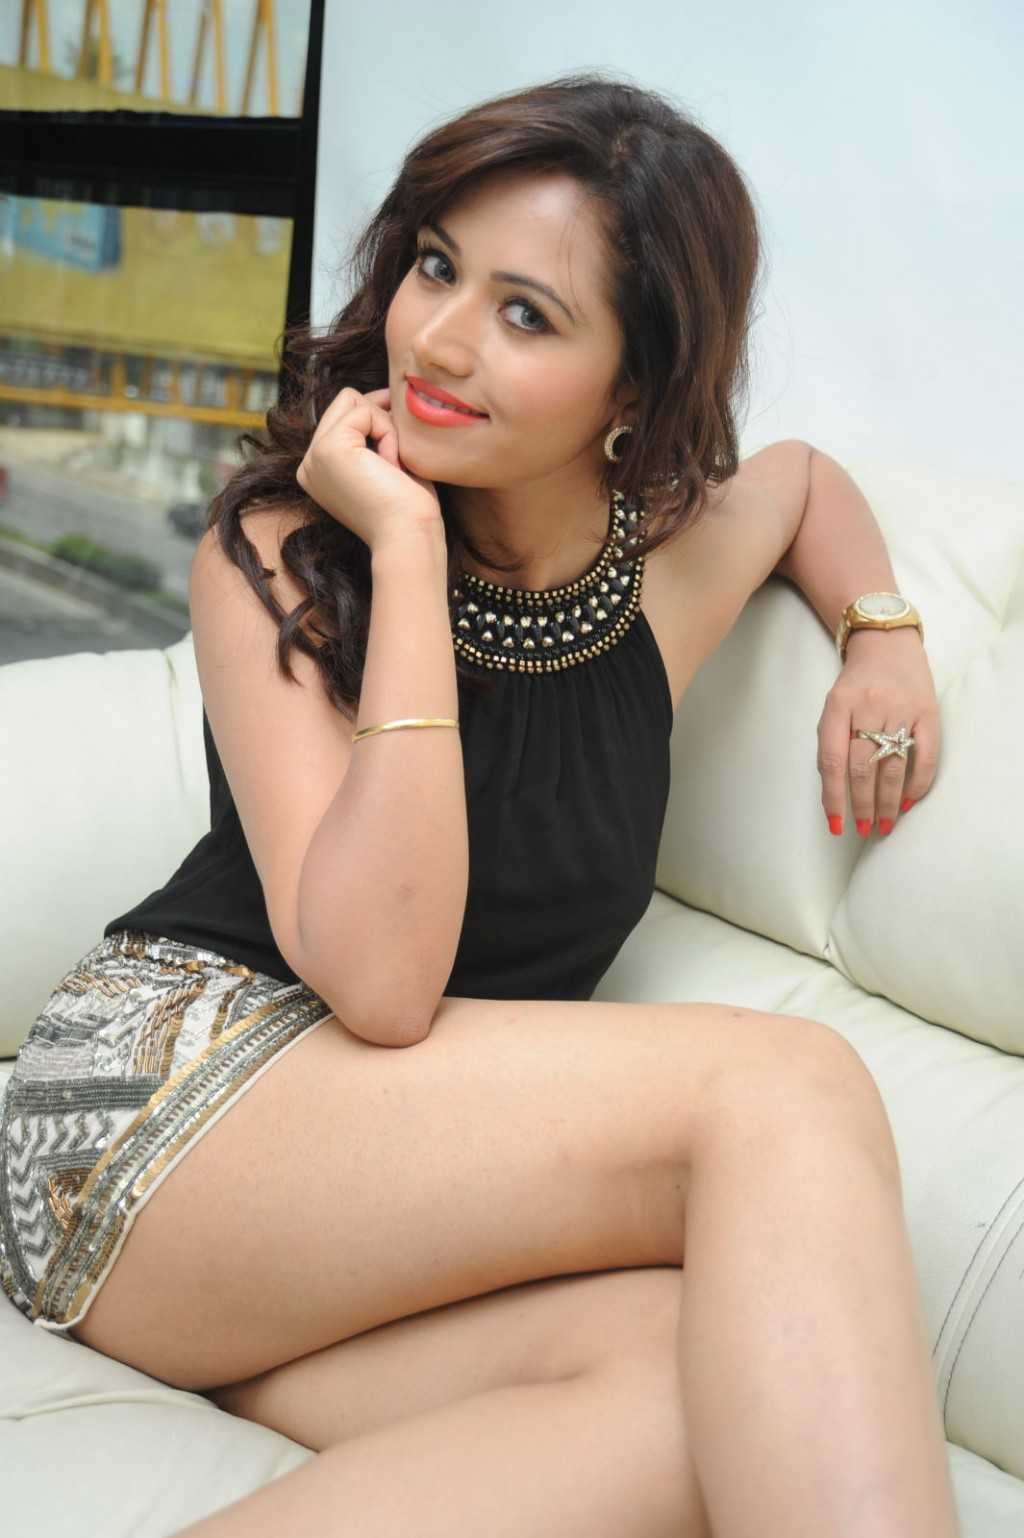 South-Indian-Actress-Preeti-Rana-Hot-Thigh-Show-Photos-6